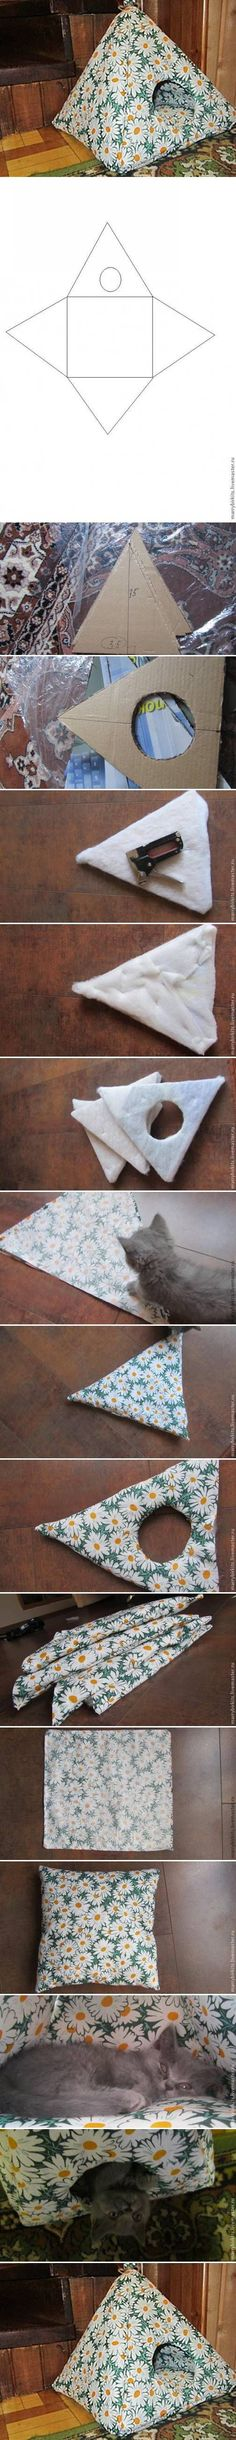 I found a cute idea for cat lovers, how to make a cat tent for your sweet kitty. All you need is a piece of cardboard, a canvas with a pattern you like (or you